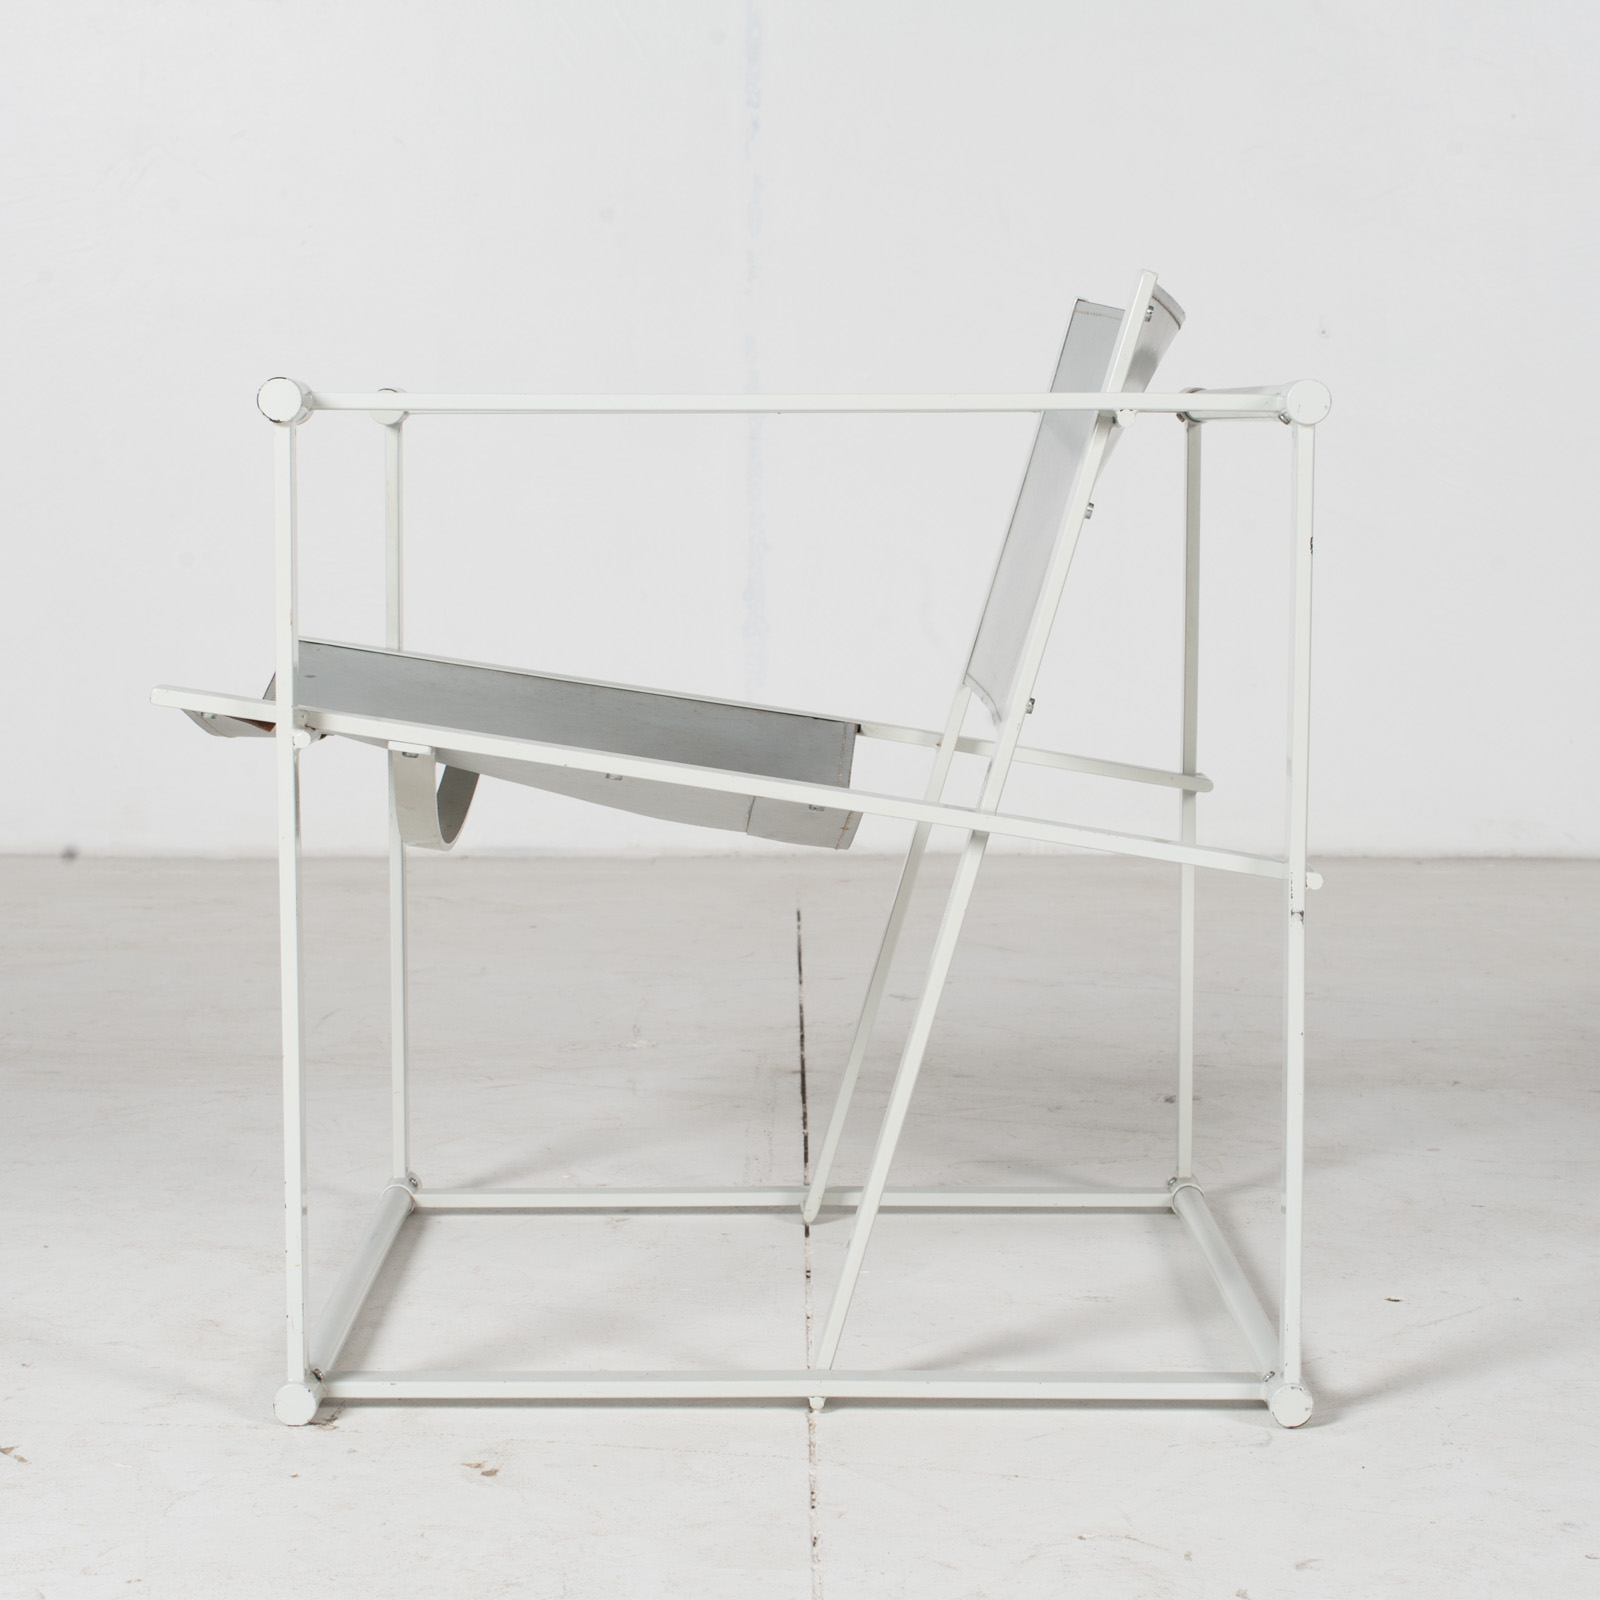 Fm60 Cubic Chairs In White Steel With Grey Leather By Radboud Van Beekum For Pastoe, The Netherlands8